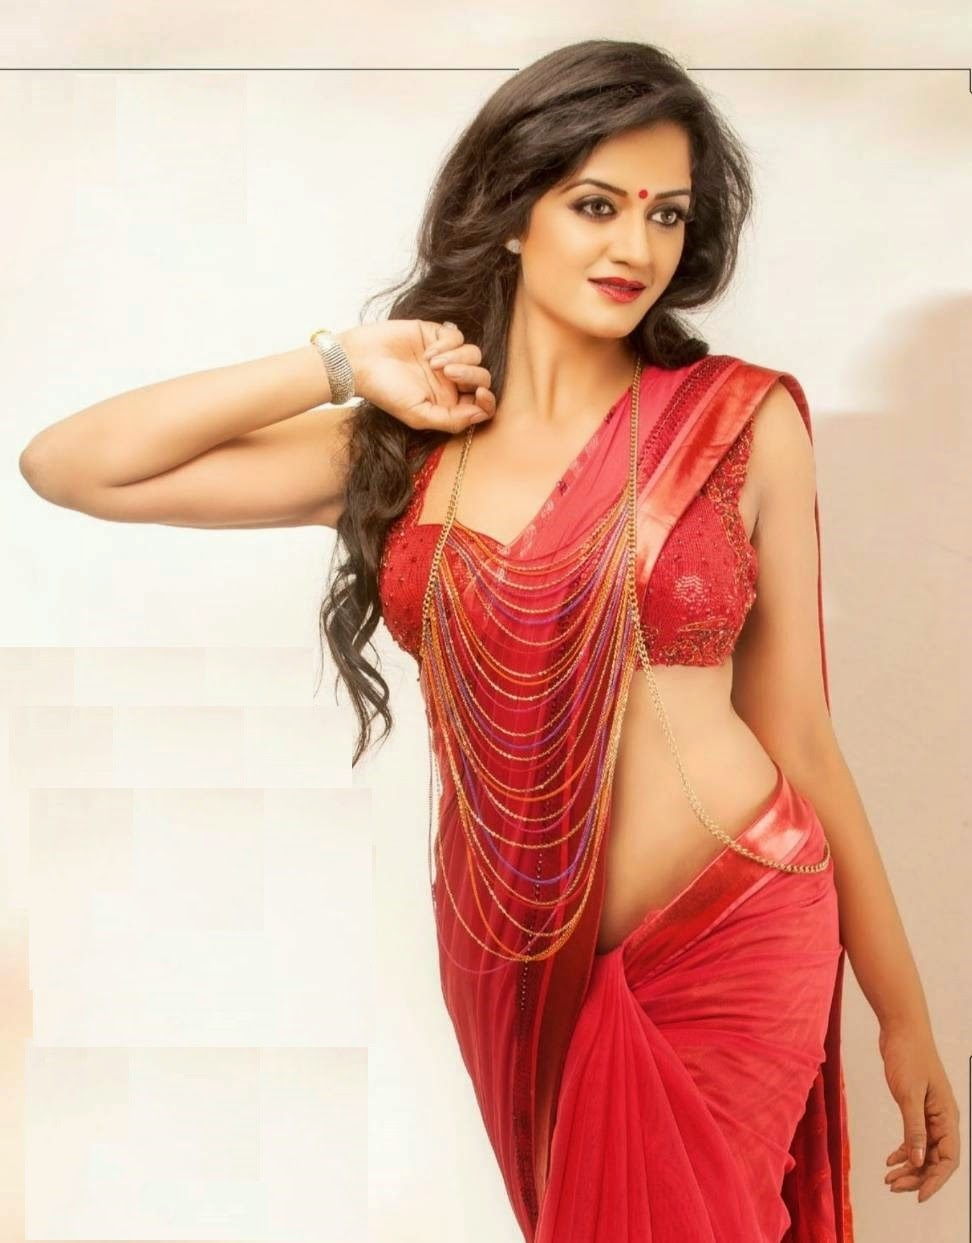 vimala raman hot in red saree belly show photos   saree